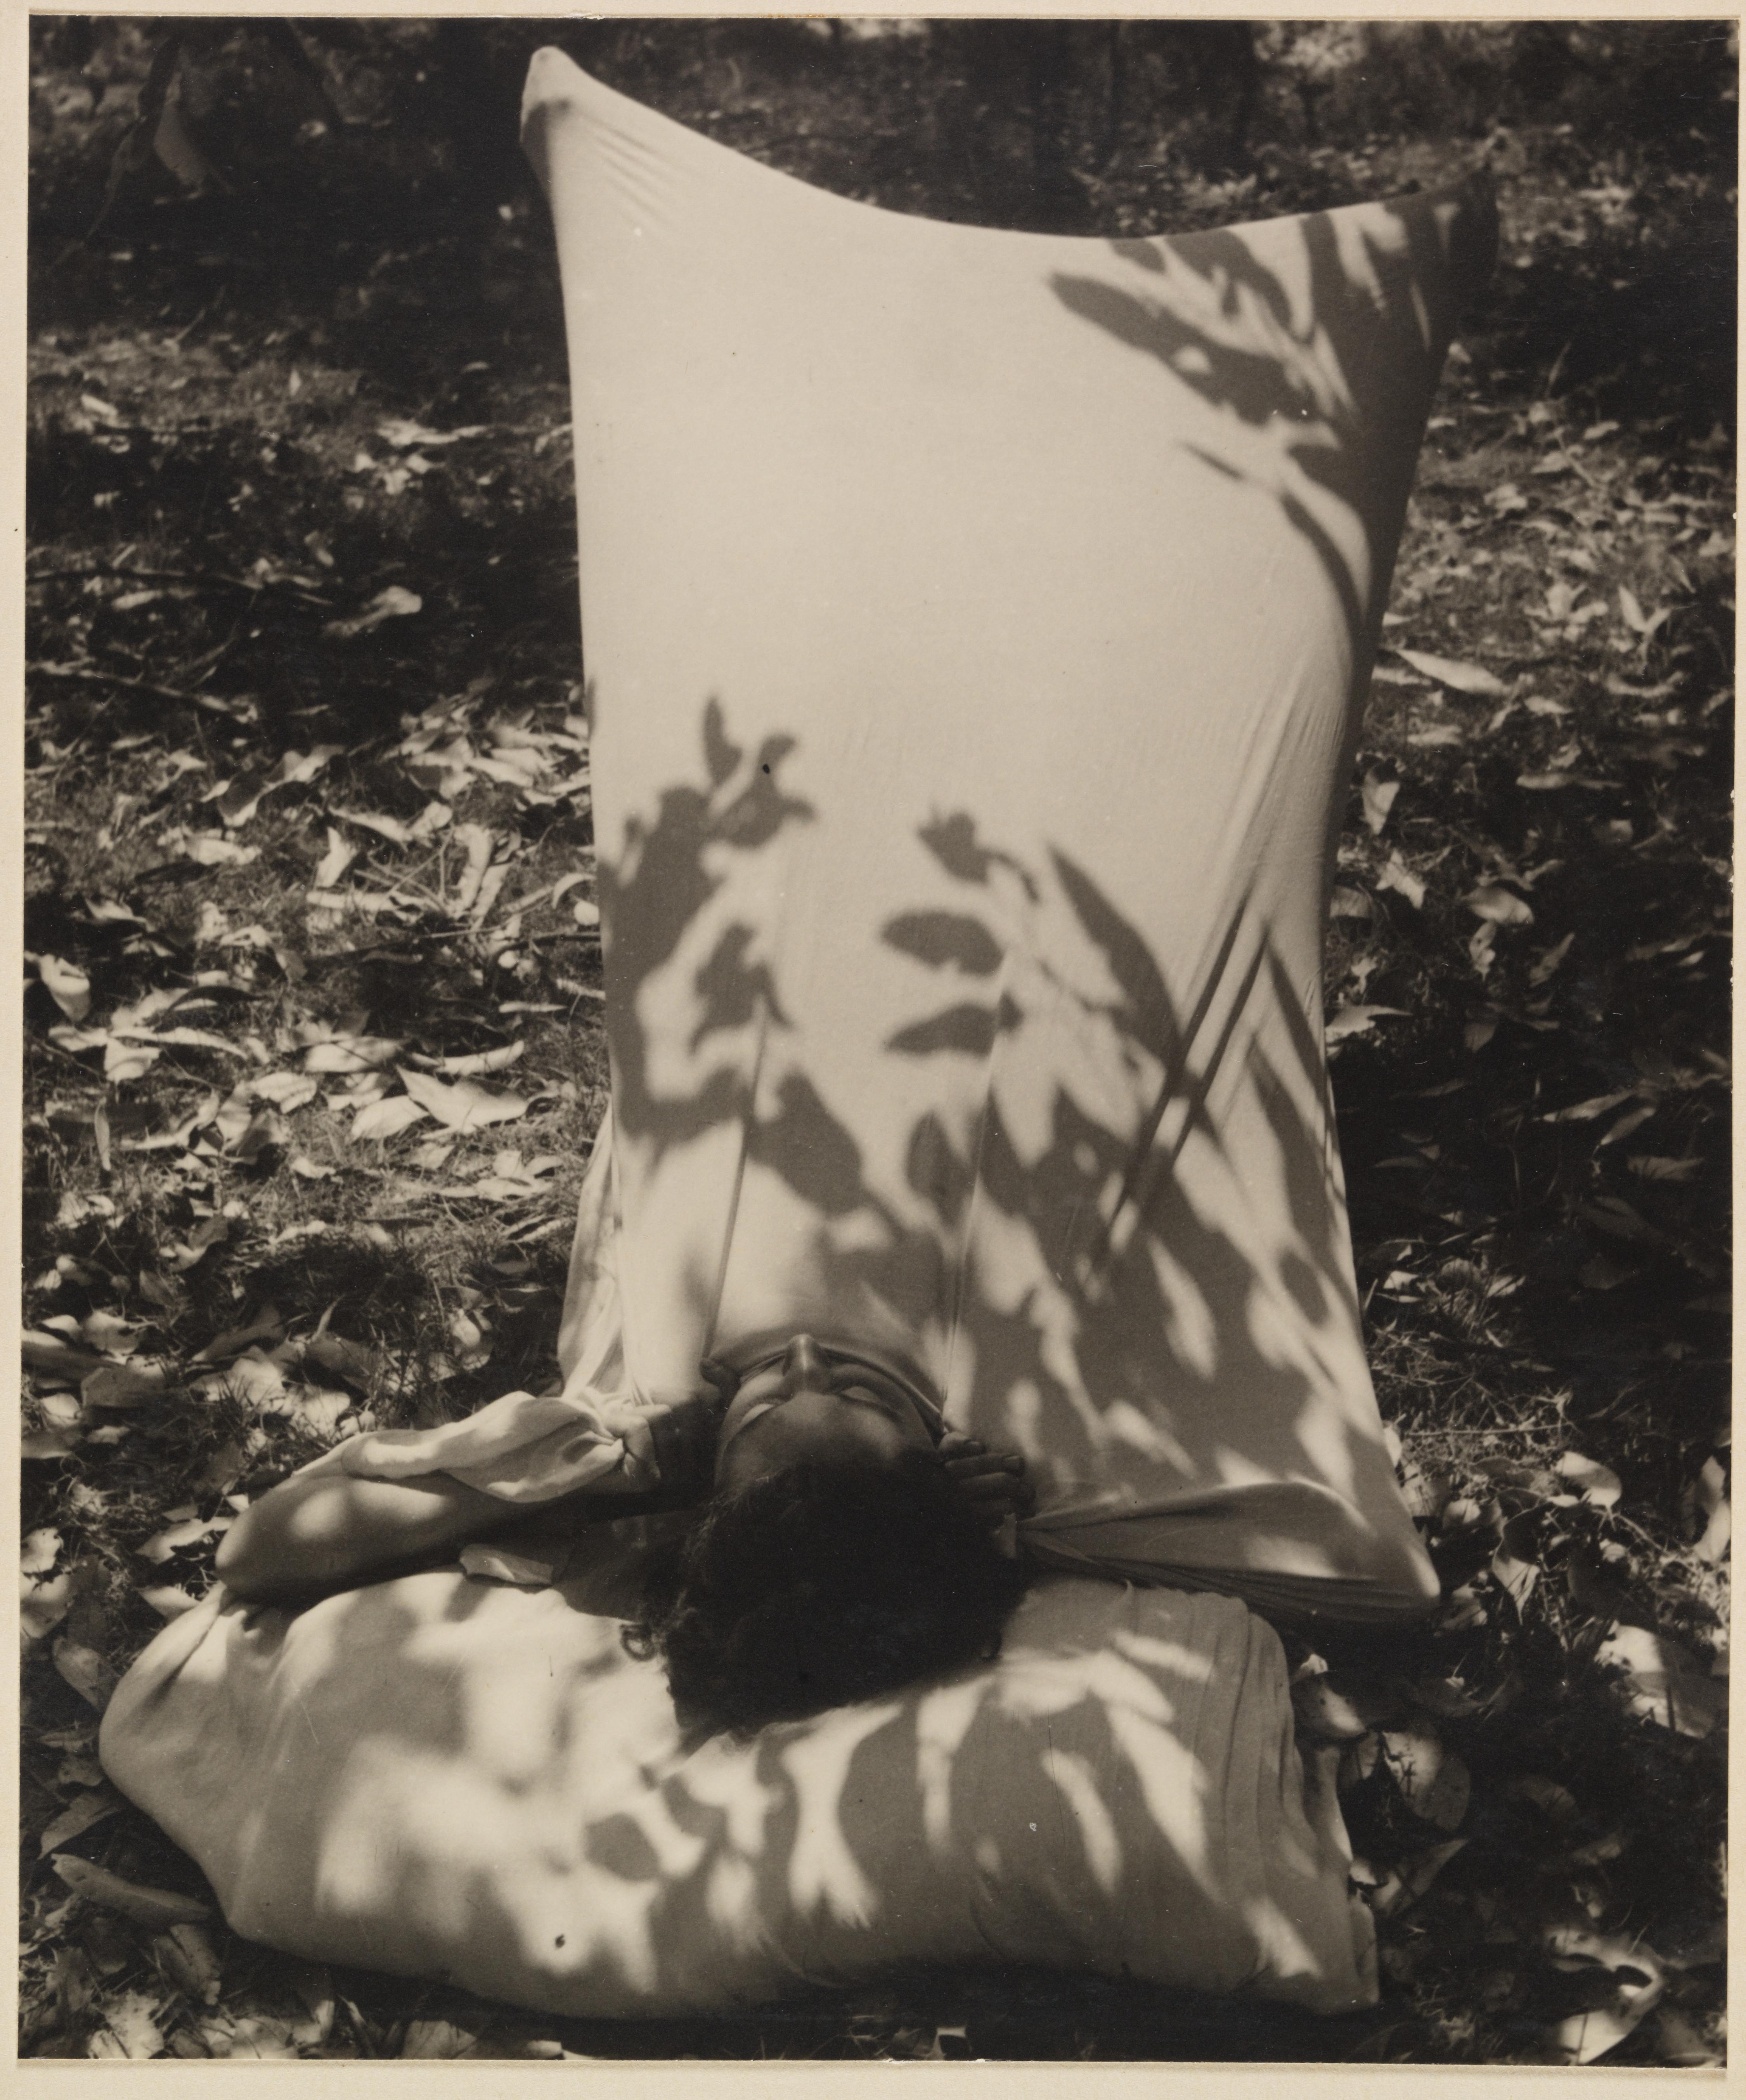 Woman in sleeping bag from Camping trips on Culburra Beach by Max Dupain and Olive Cotton